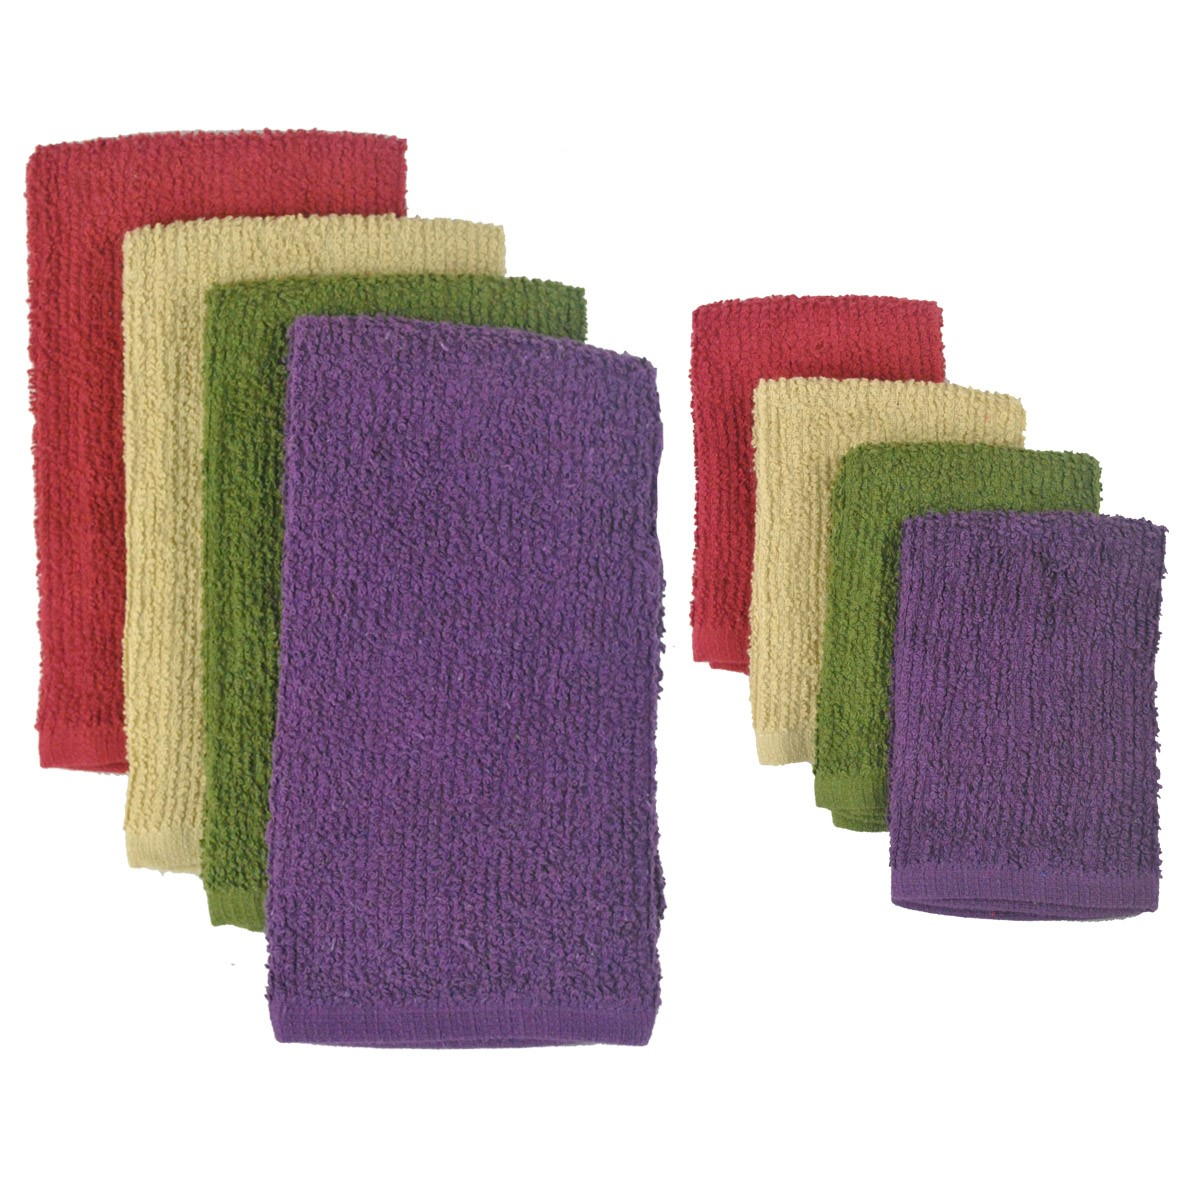 Design Imports Urban Bar Mop Dishtowel and Dishcloth Set (2 Pieces)